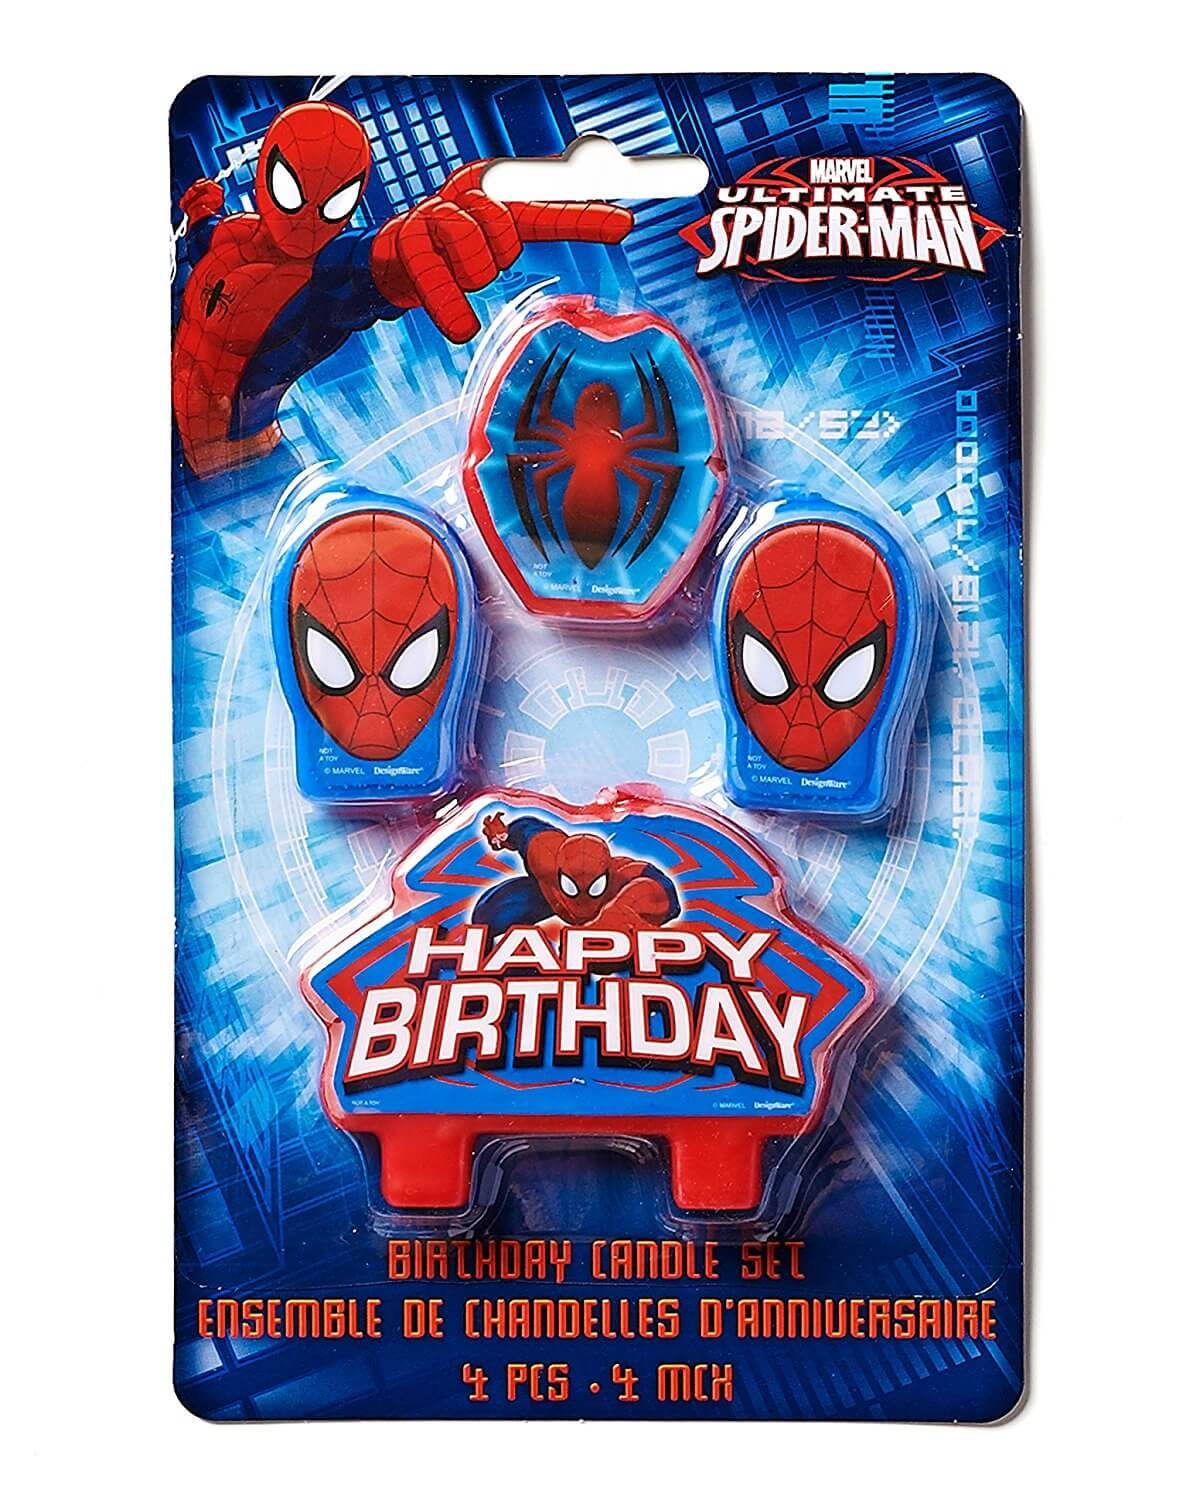 a set of 4 spiderman candles in their packaging